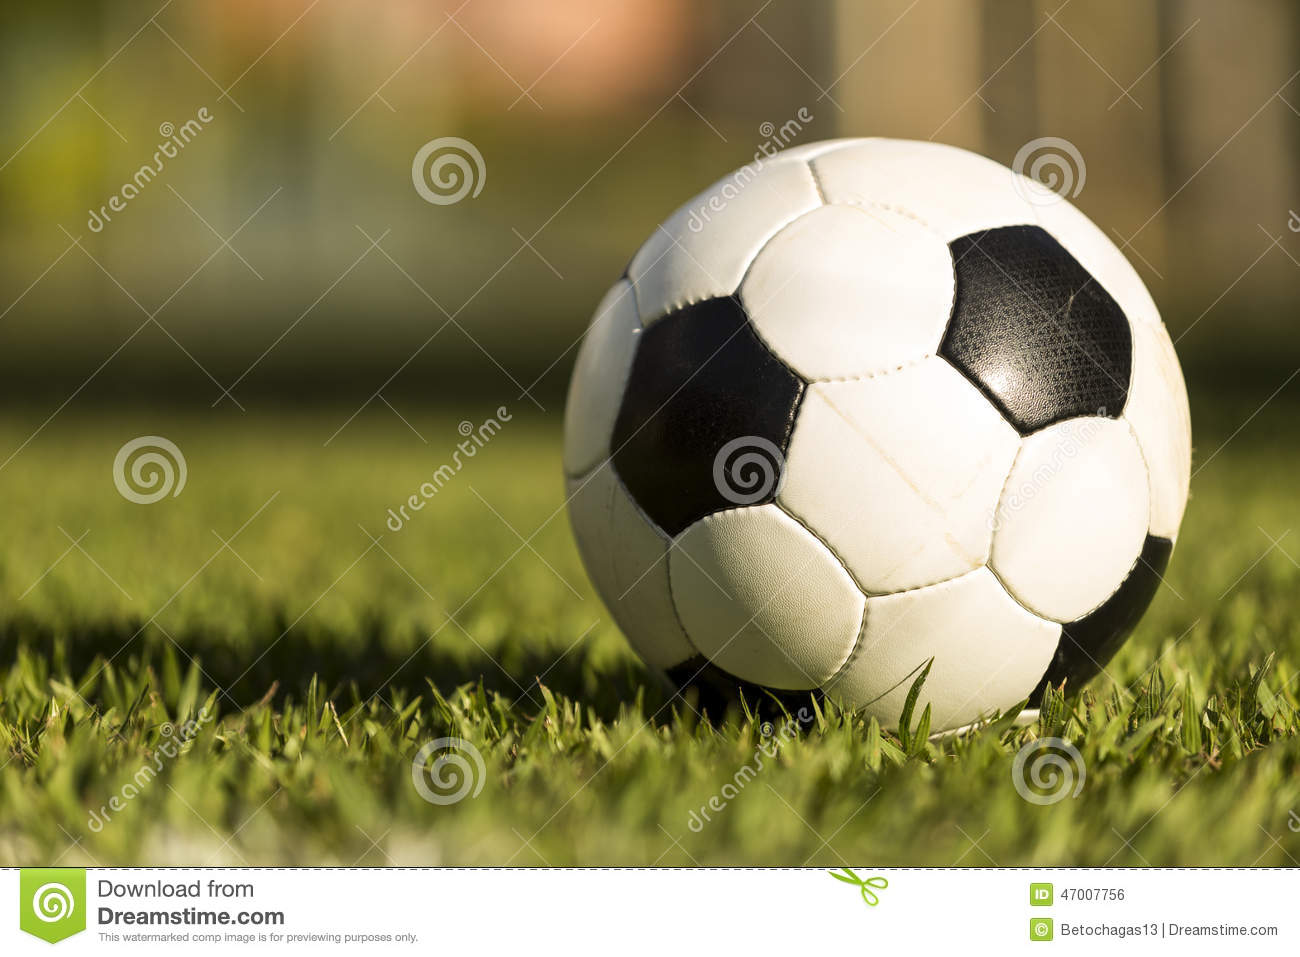 Soccer ball on a grass field.